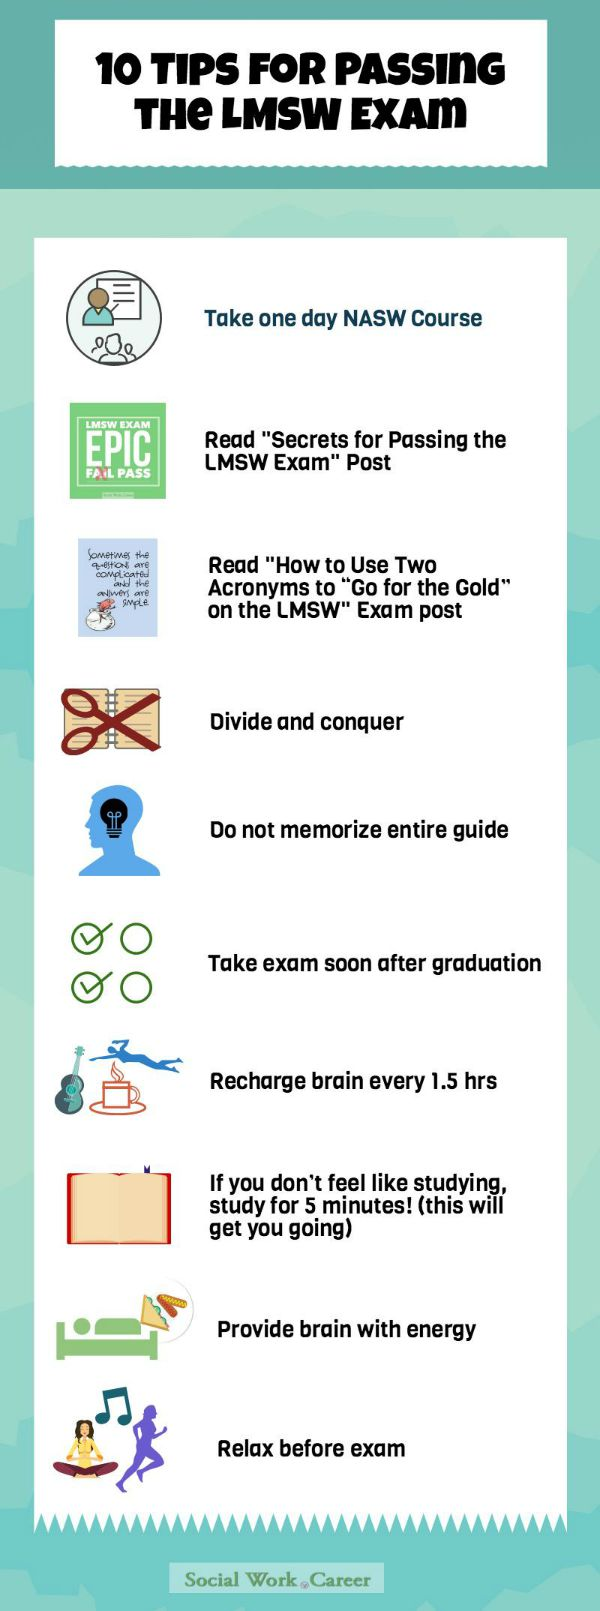 10 LMSW tips to pass exam 600